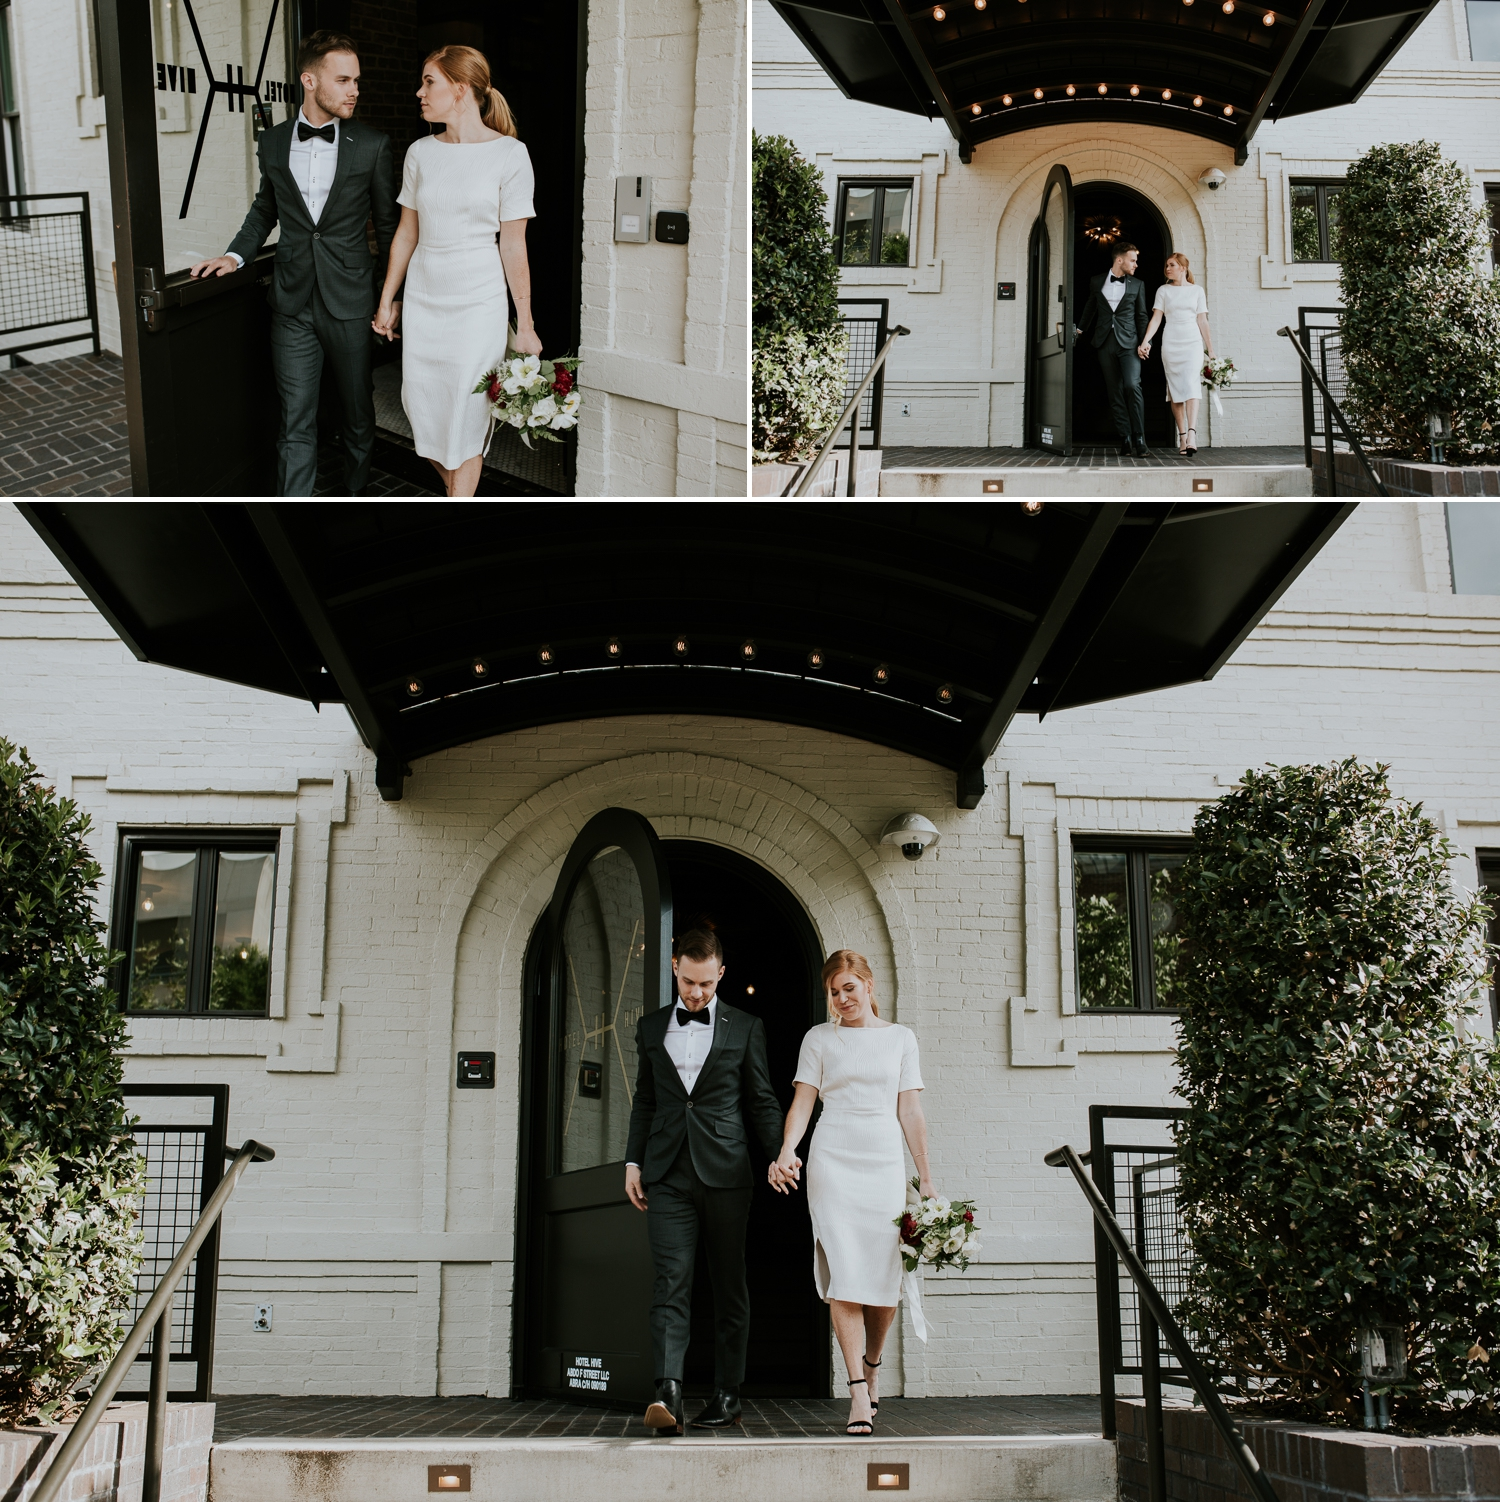 washington-dc-hotel-hive-elopement-wedding-photographer 38.jpg